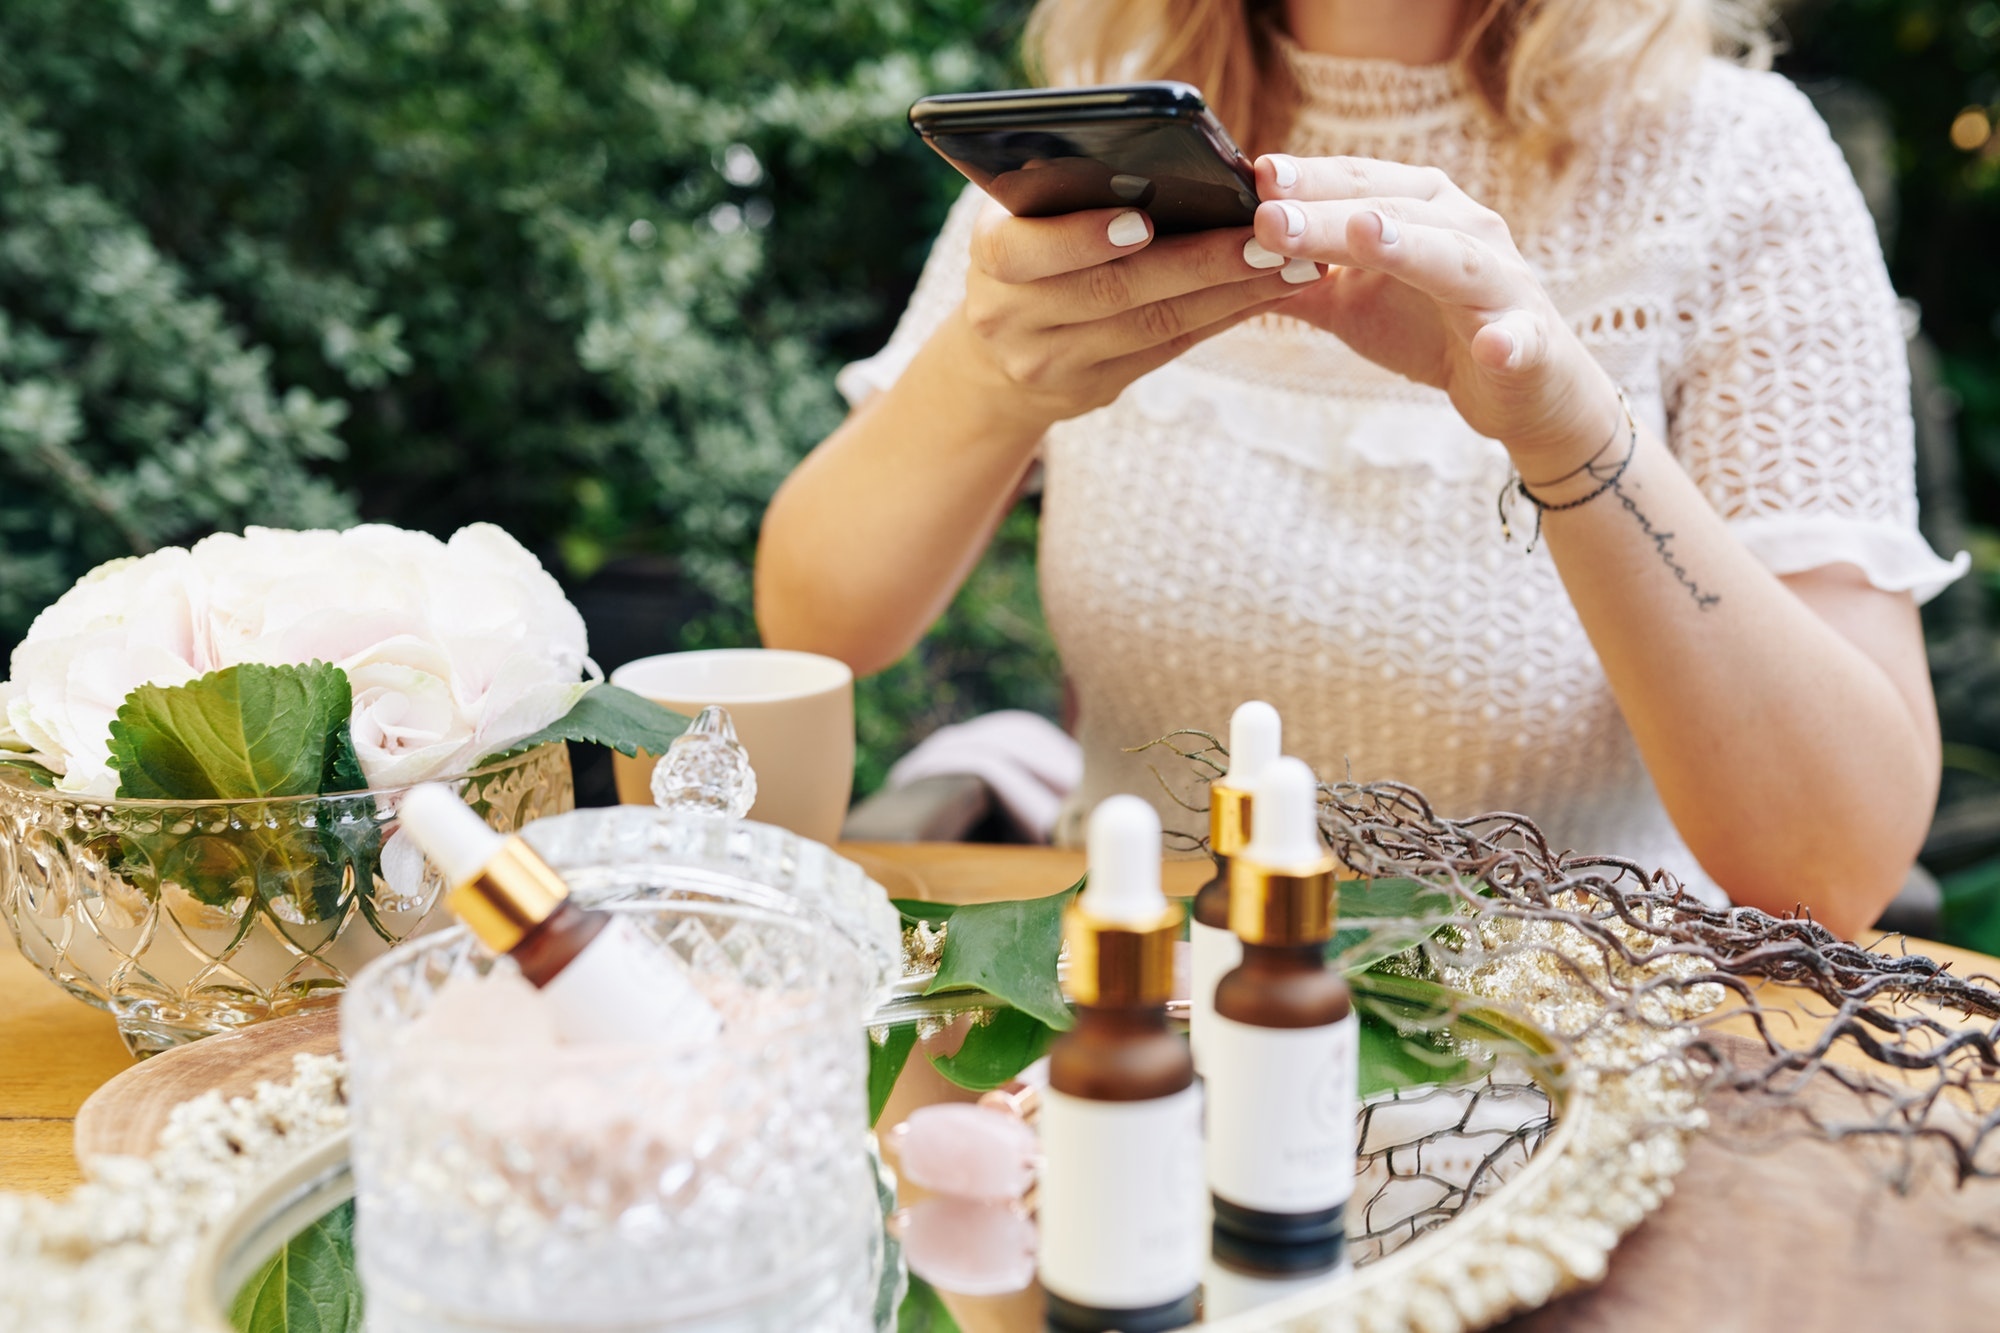 Brand owner photographing new cosmetics